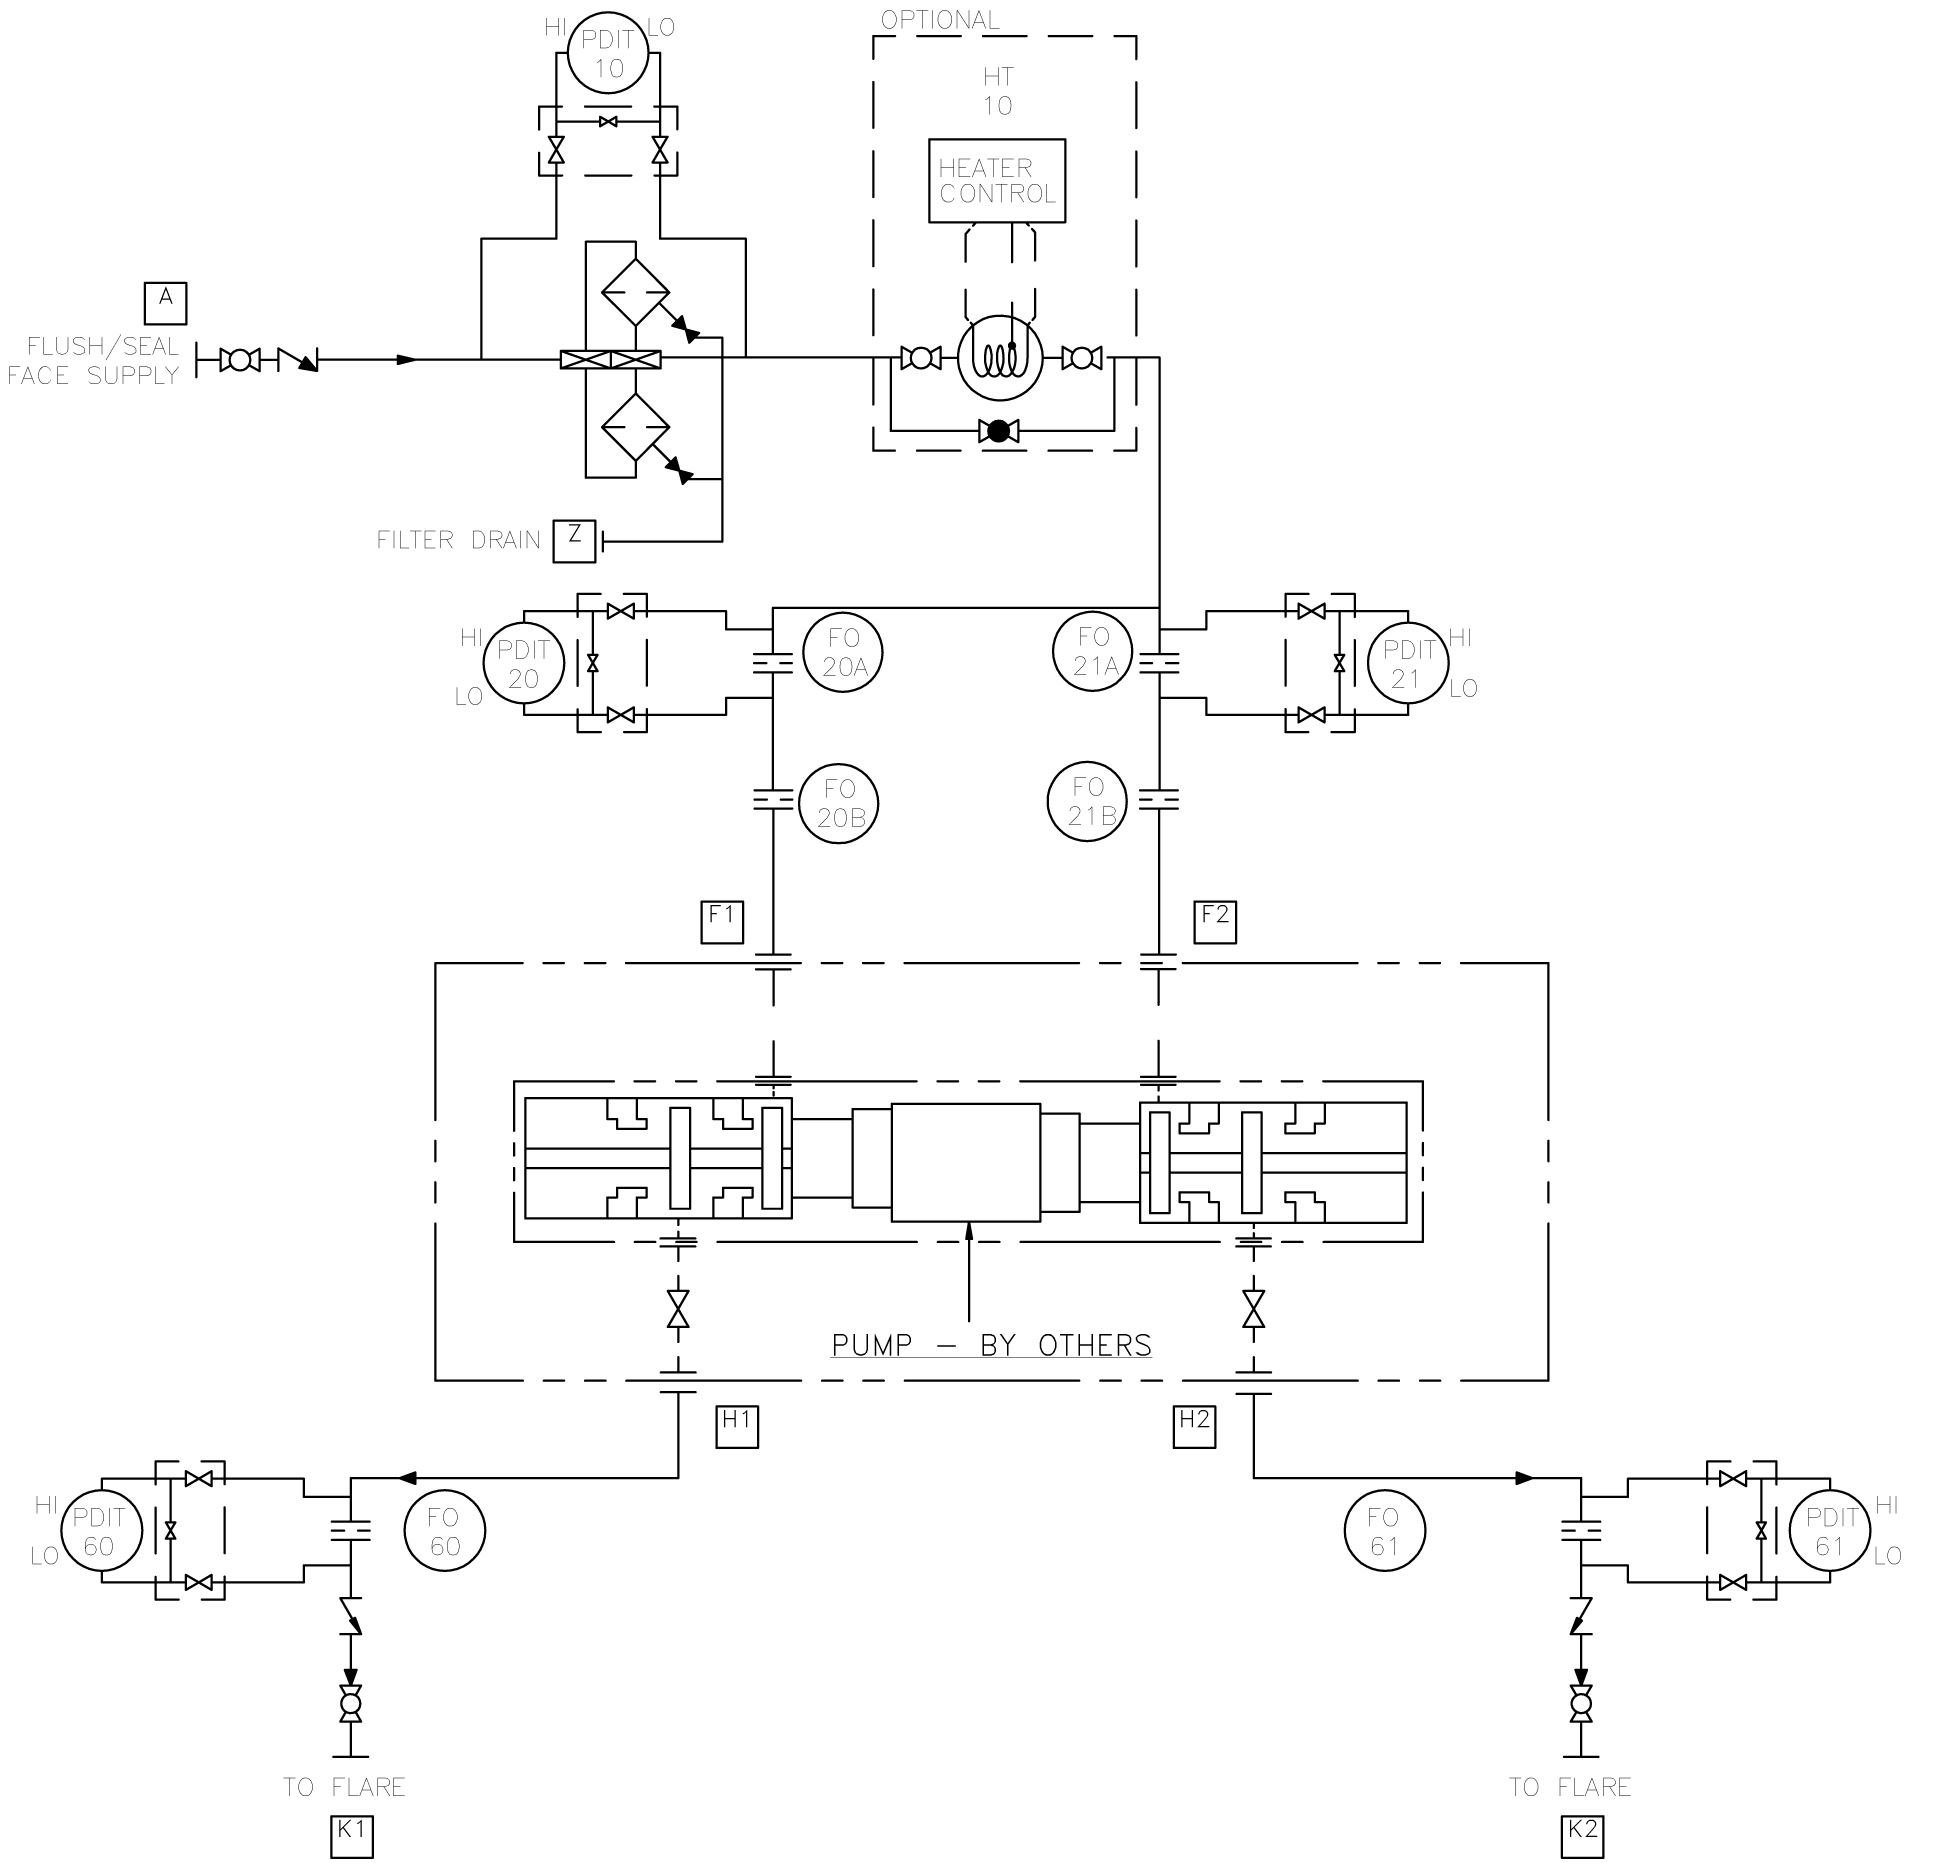 Piping and Instrumentation Diagram PampID Designer